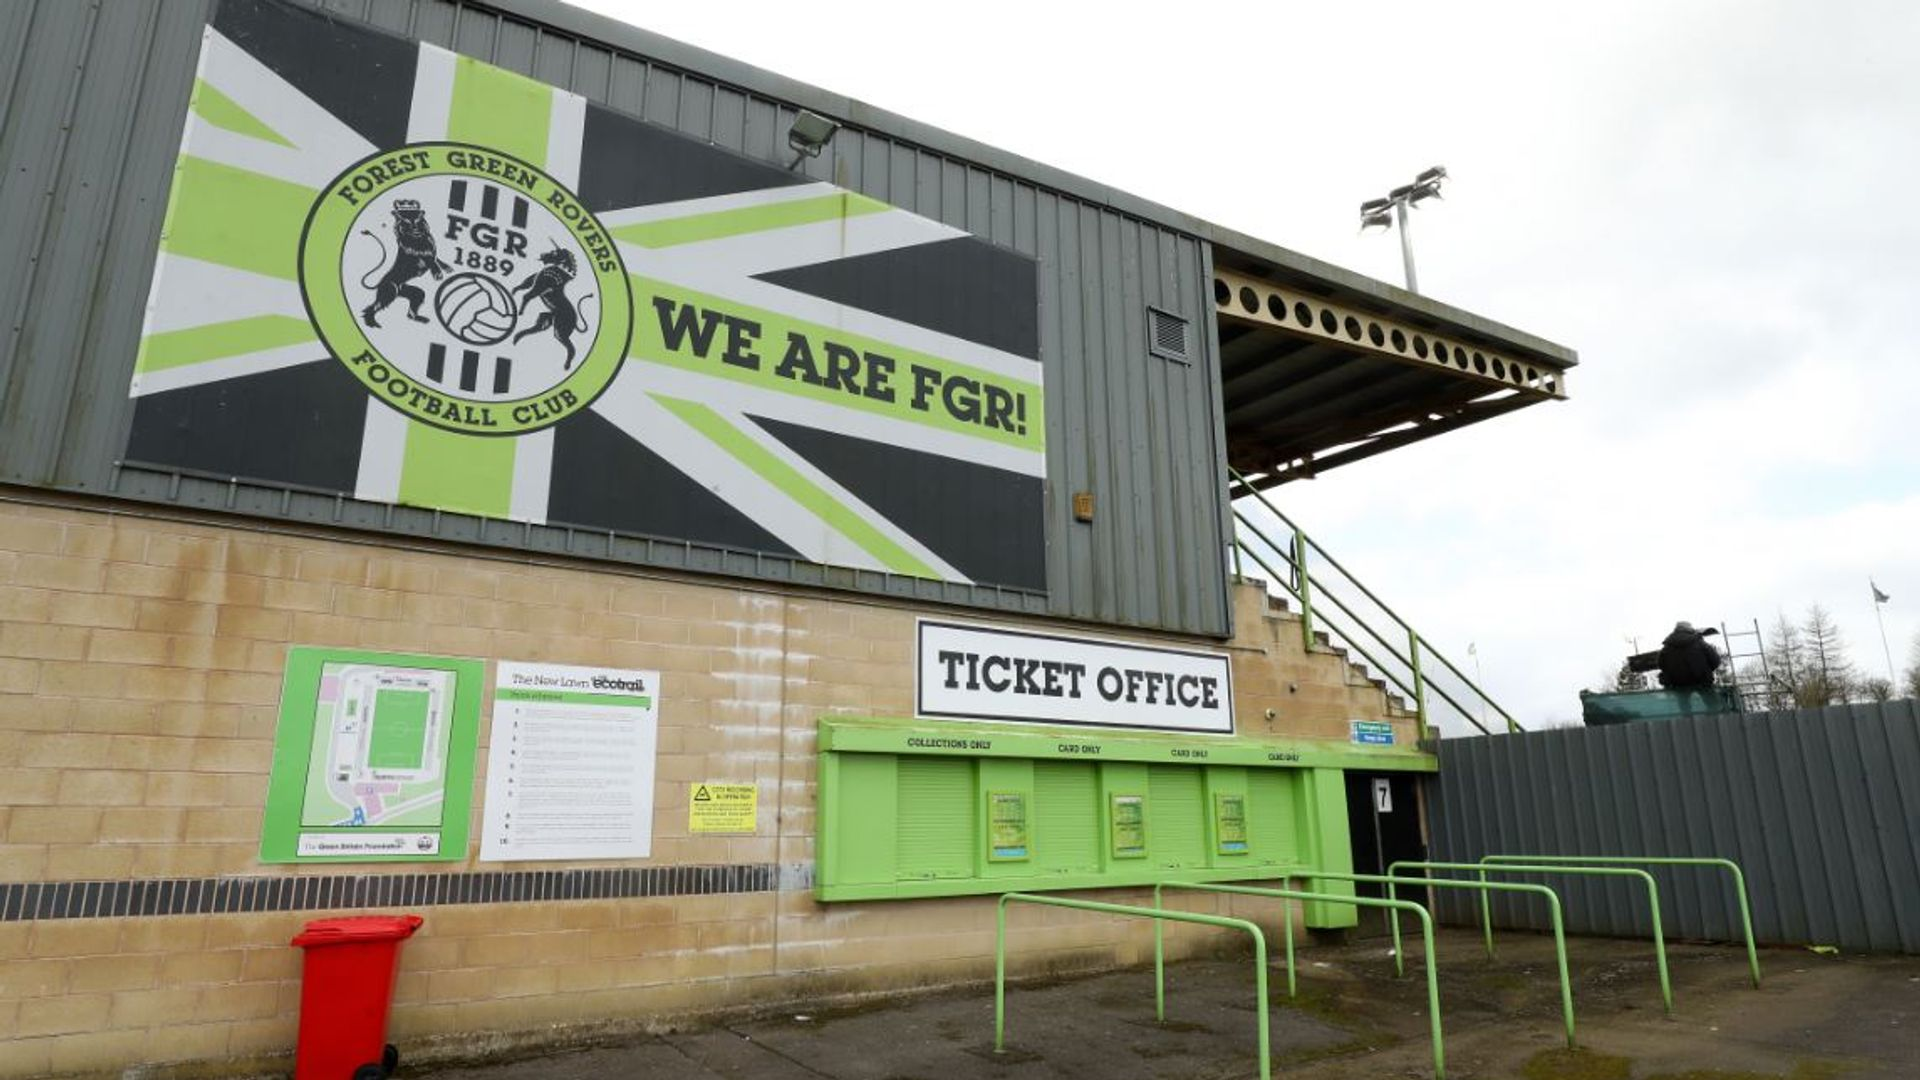 Forest Green Rovers player suffers alleged homophobic abuse | Football News